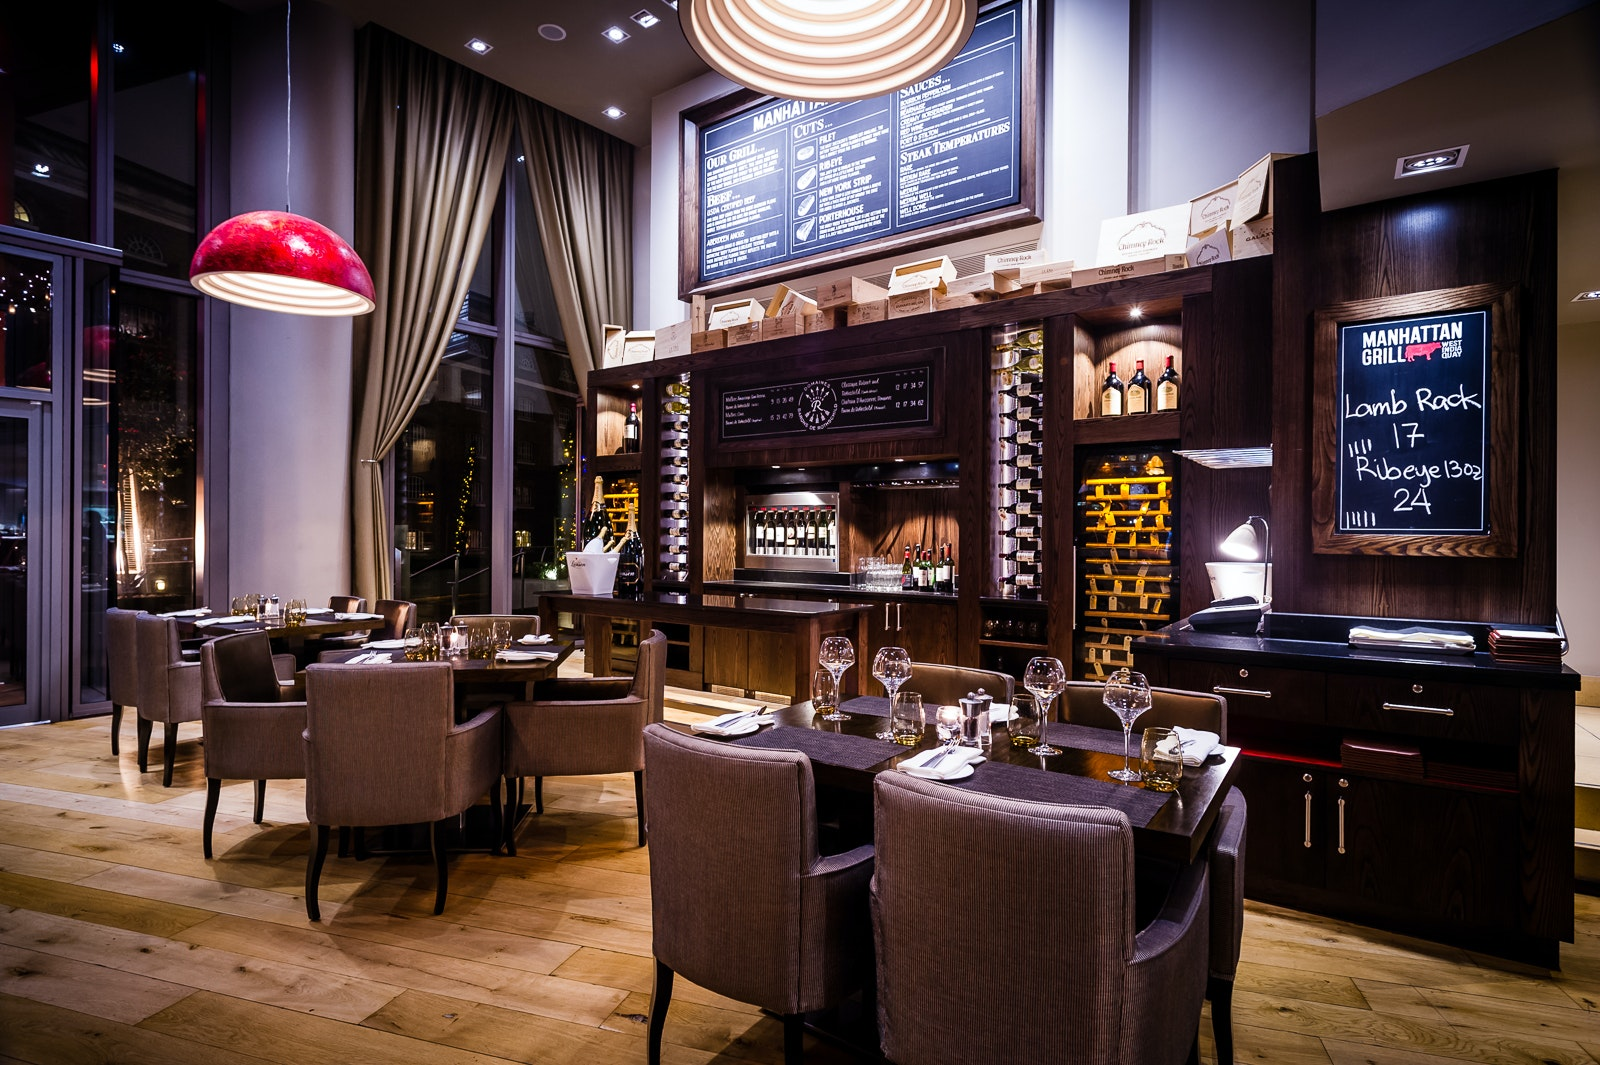 Dinner for 2 at manhattan grill sweepstakes